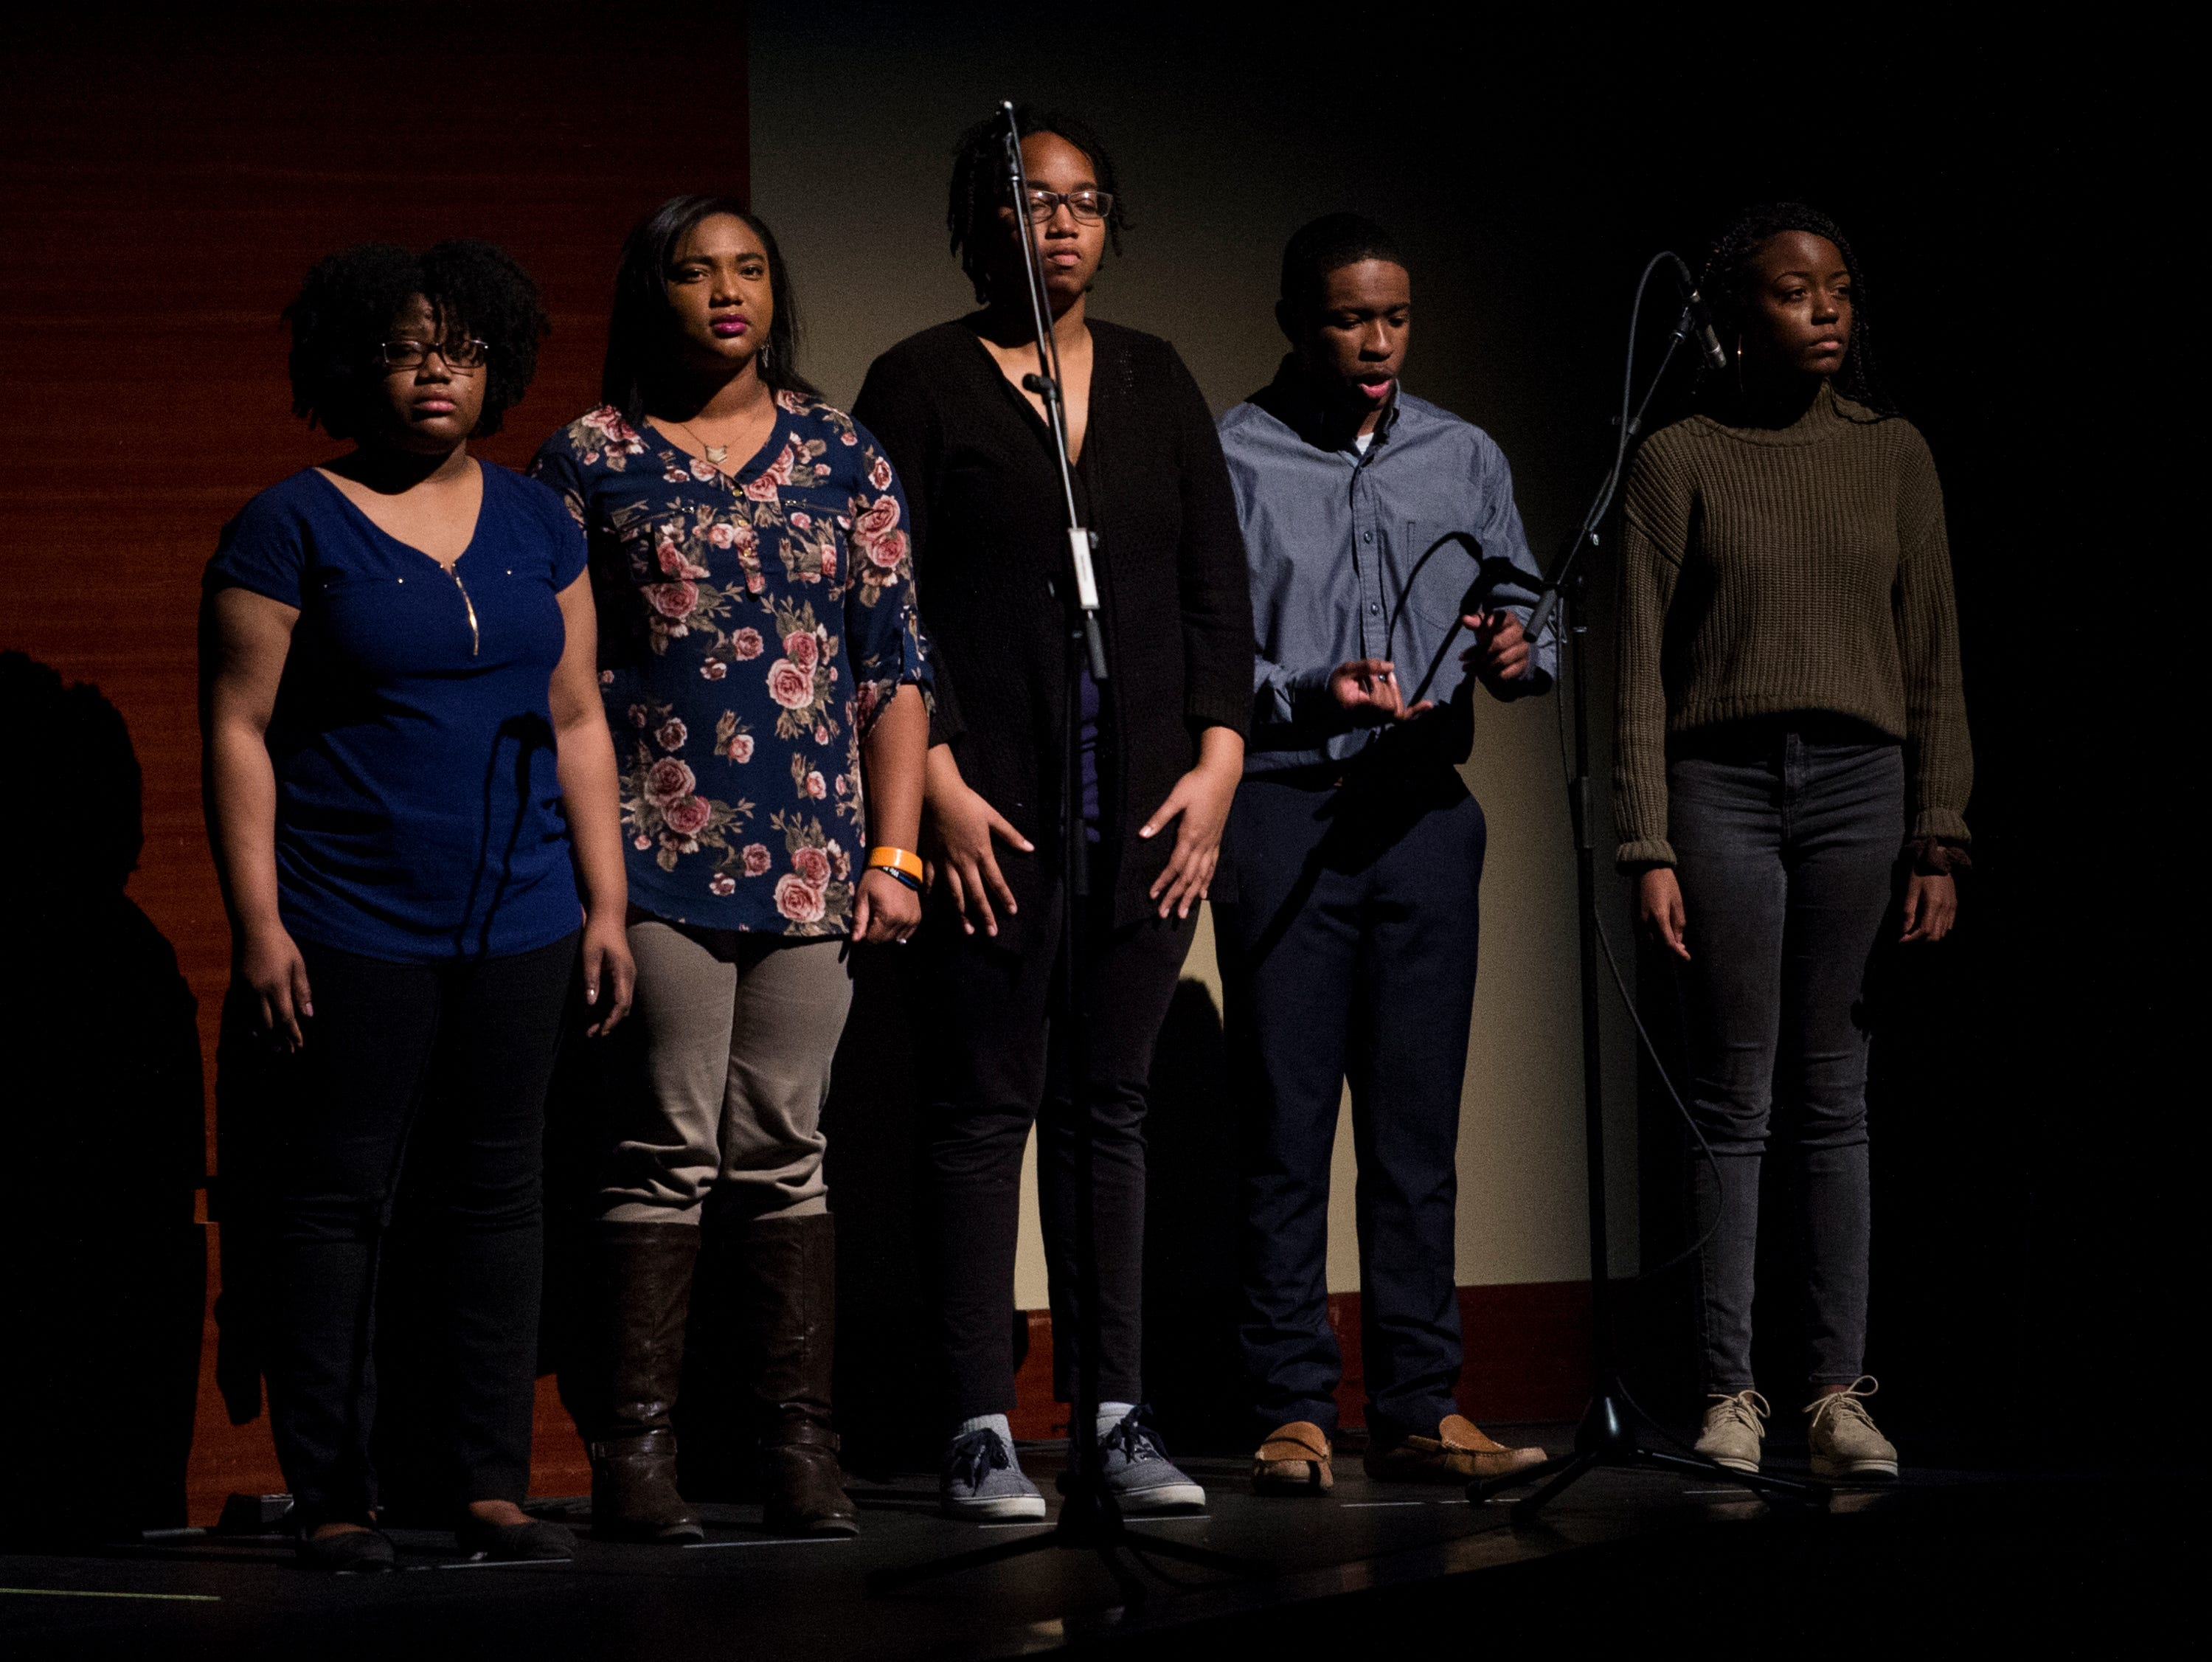 Creative writing students perform during the BTW Showcase: Rise at the Montgomery Performing Arts Center in Montgomery, Ala., on Friday, Jan. 11, 2019.